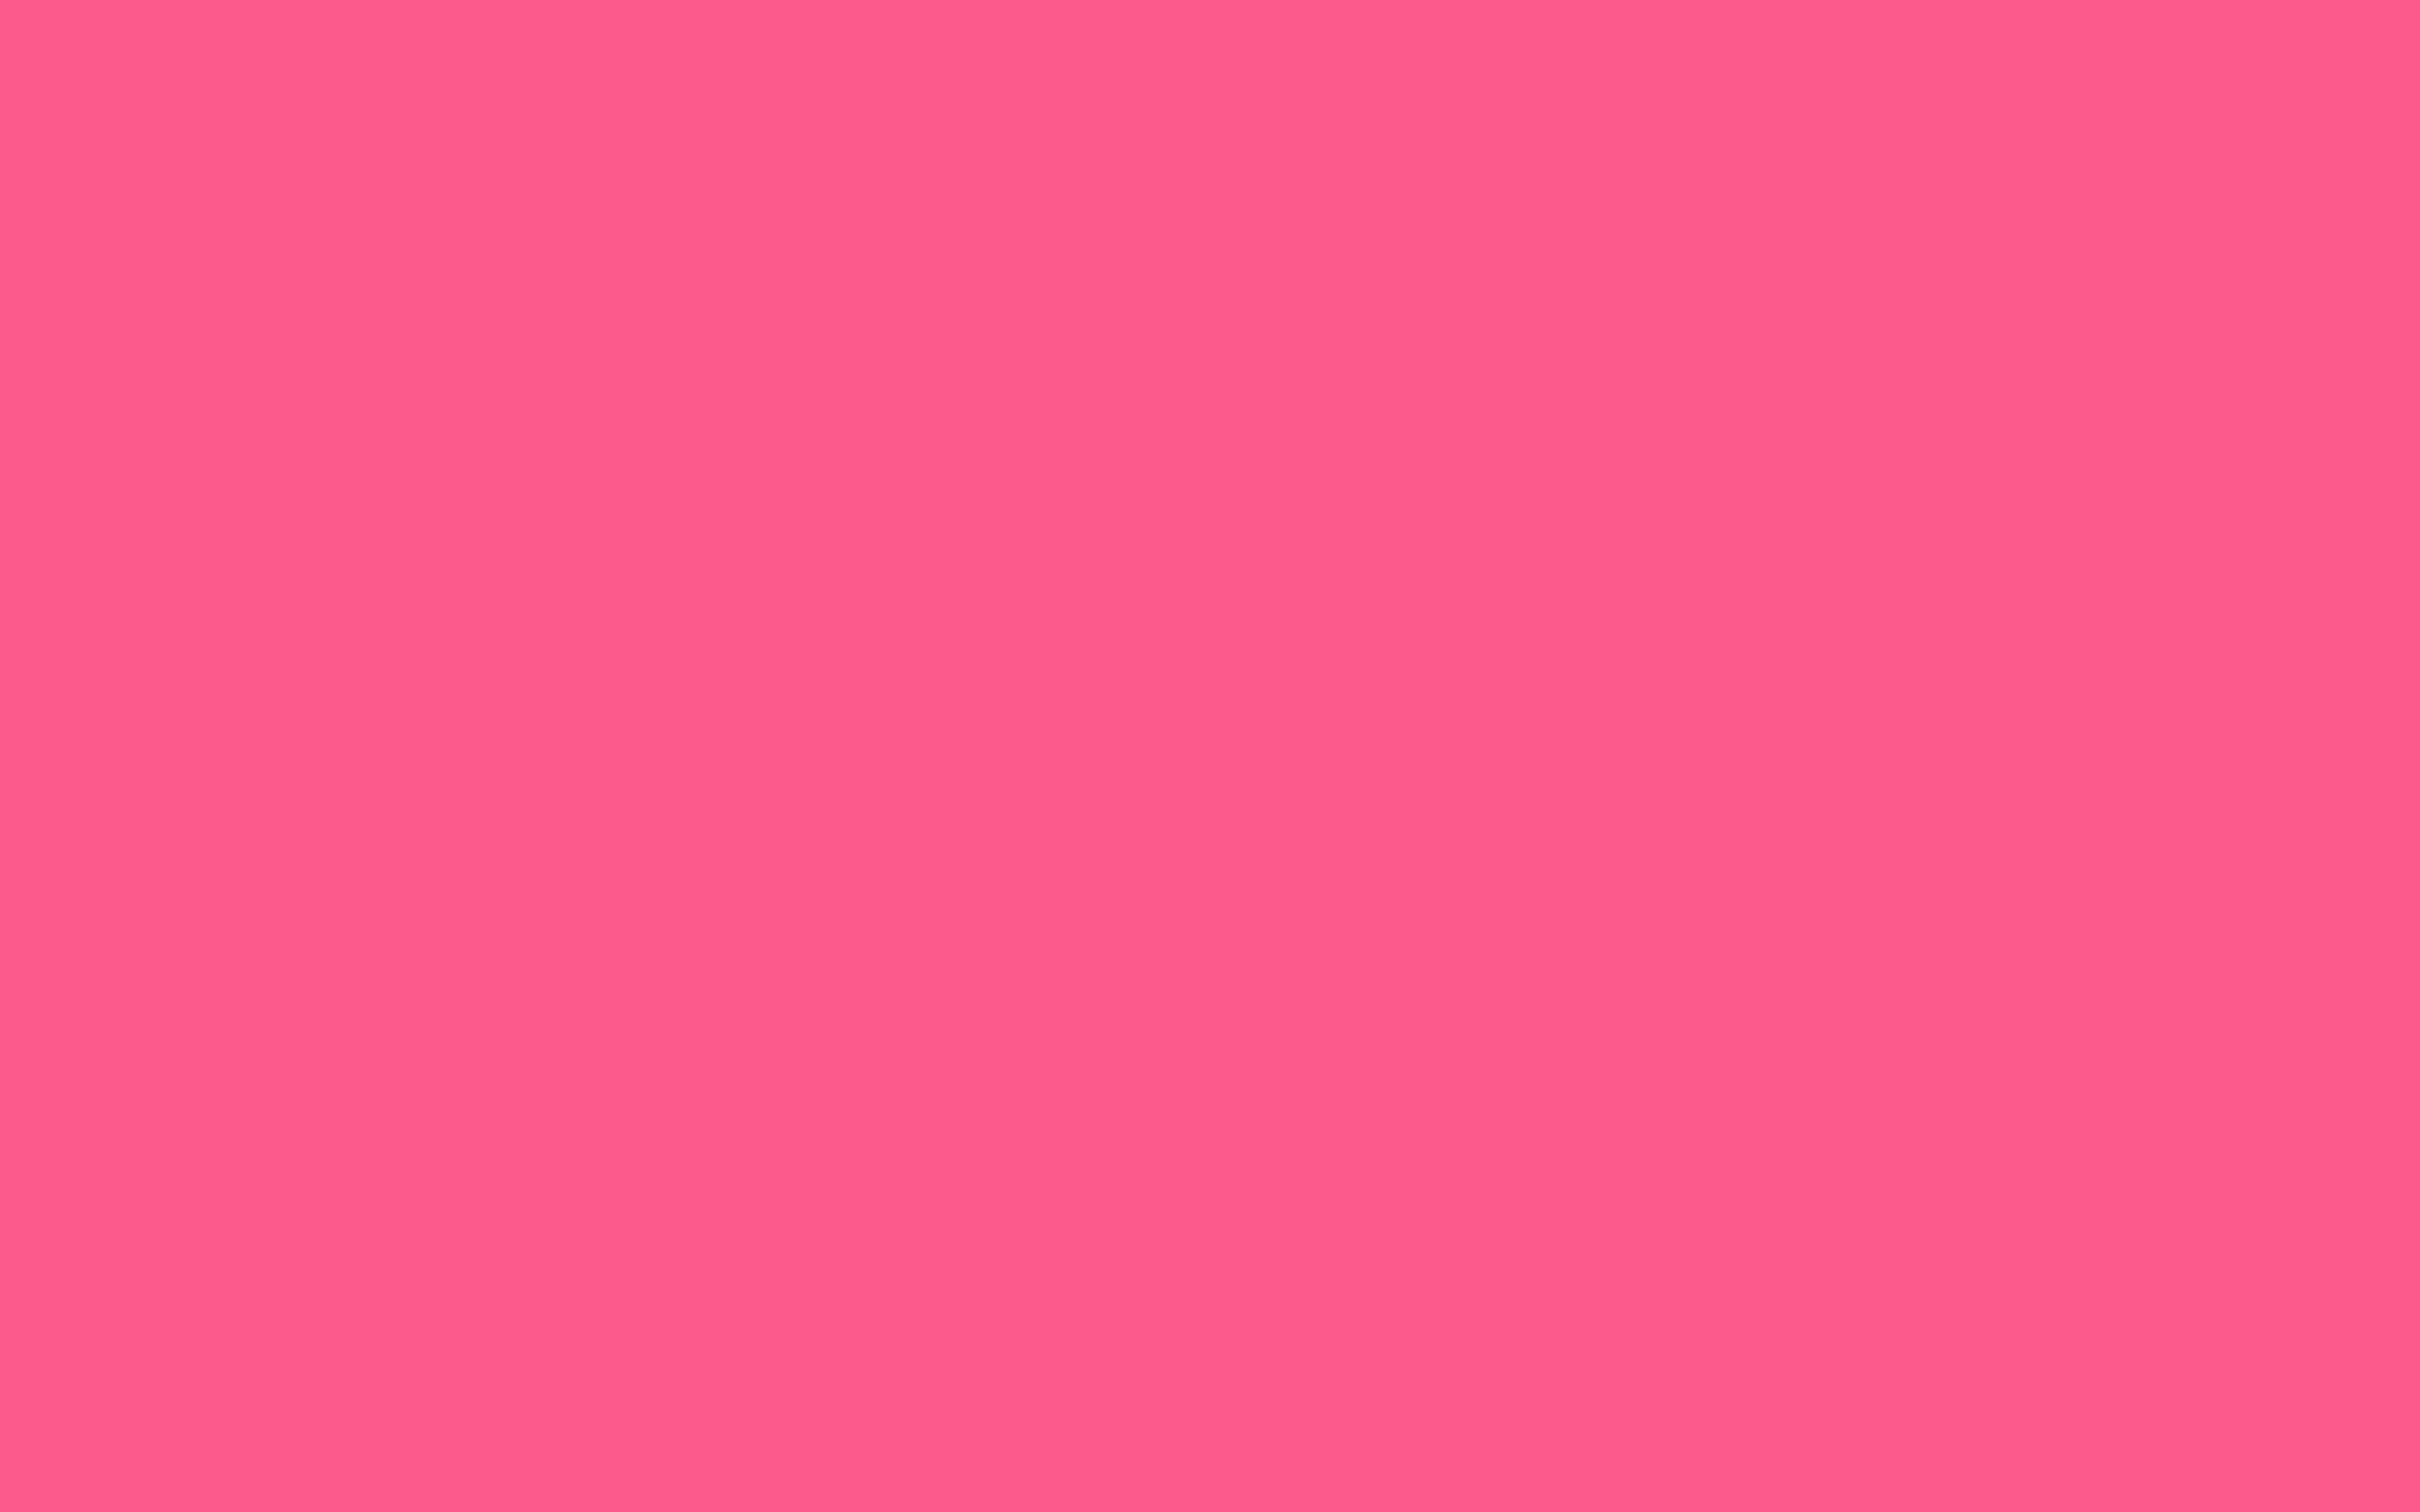 2560x1600 Strawberry Solid Color Background